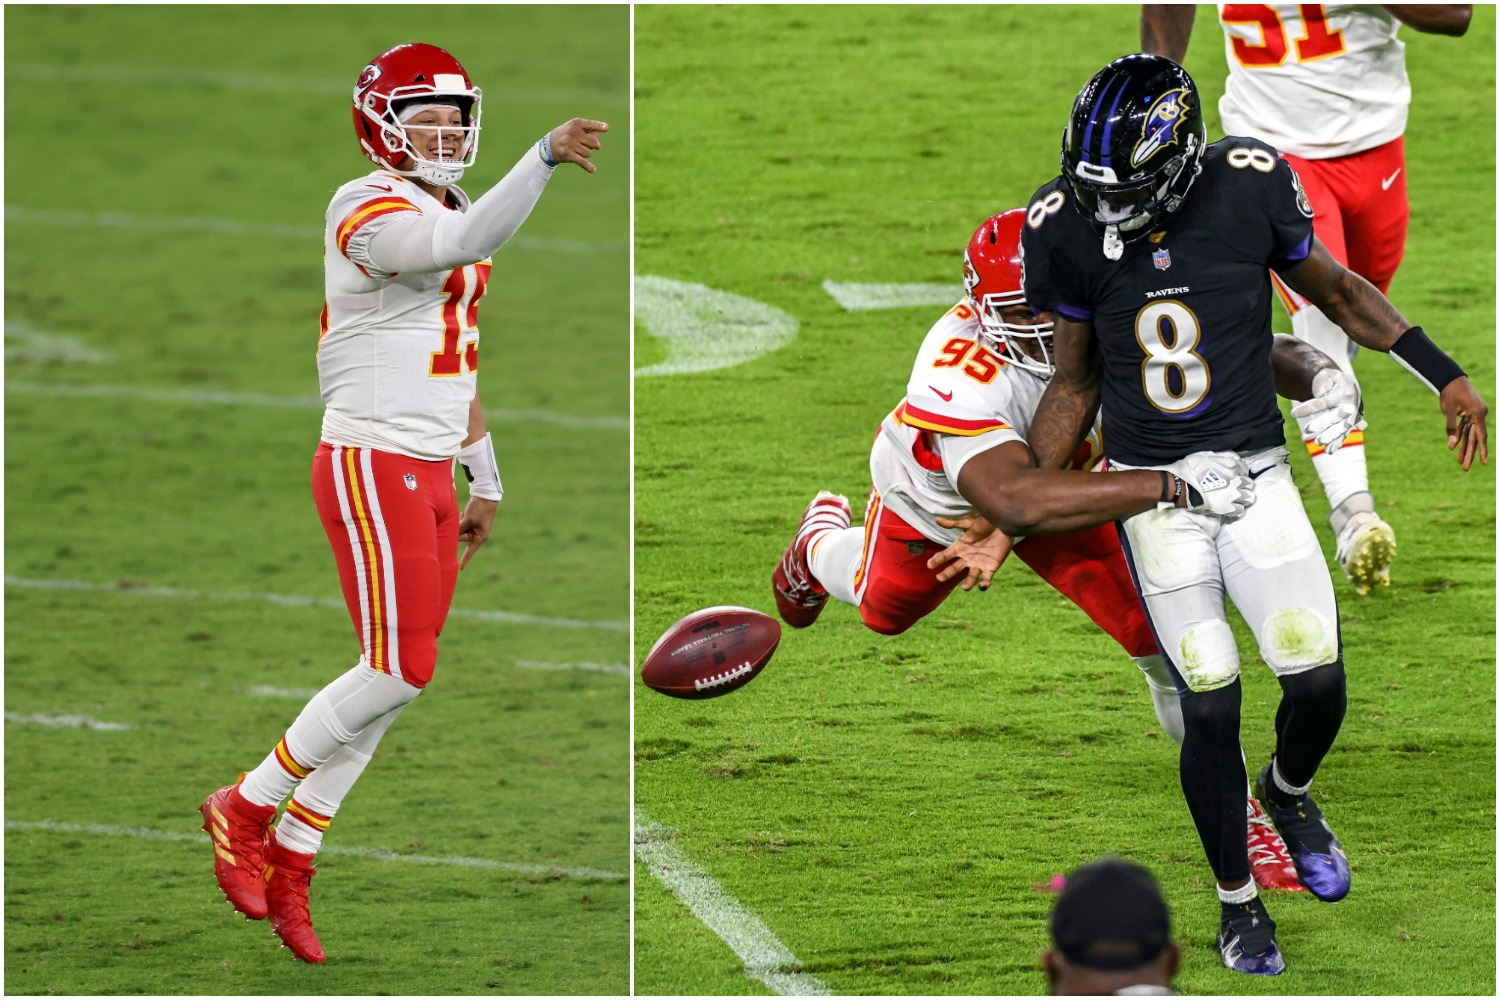 Patrick Mahomes just proved why Lamar Jackson isn't in his class as a quarterback with a monster performance on Monday Night Football.